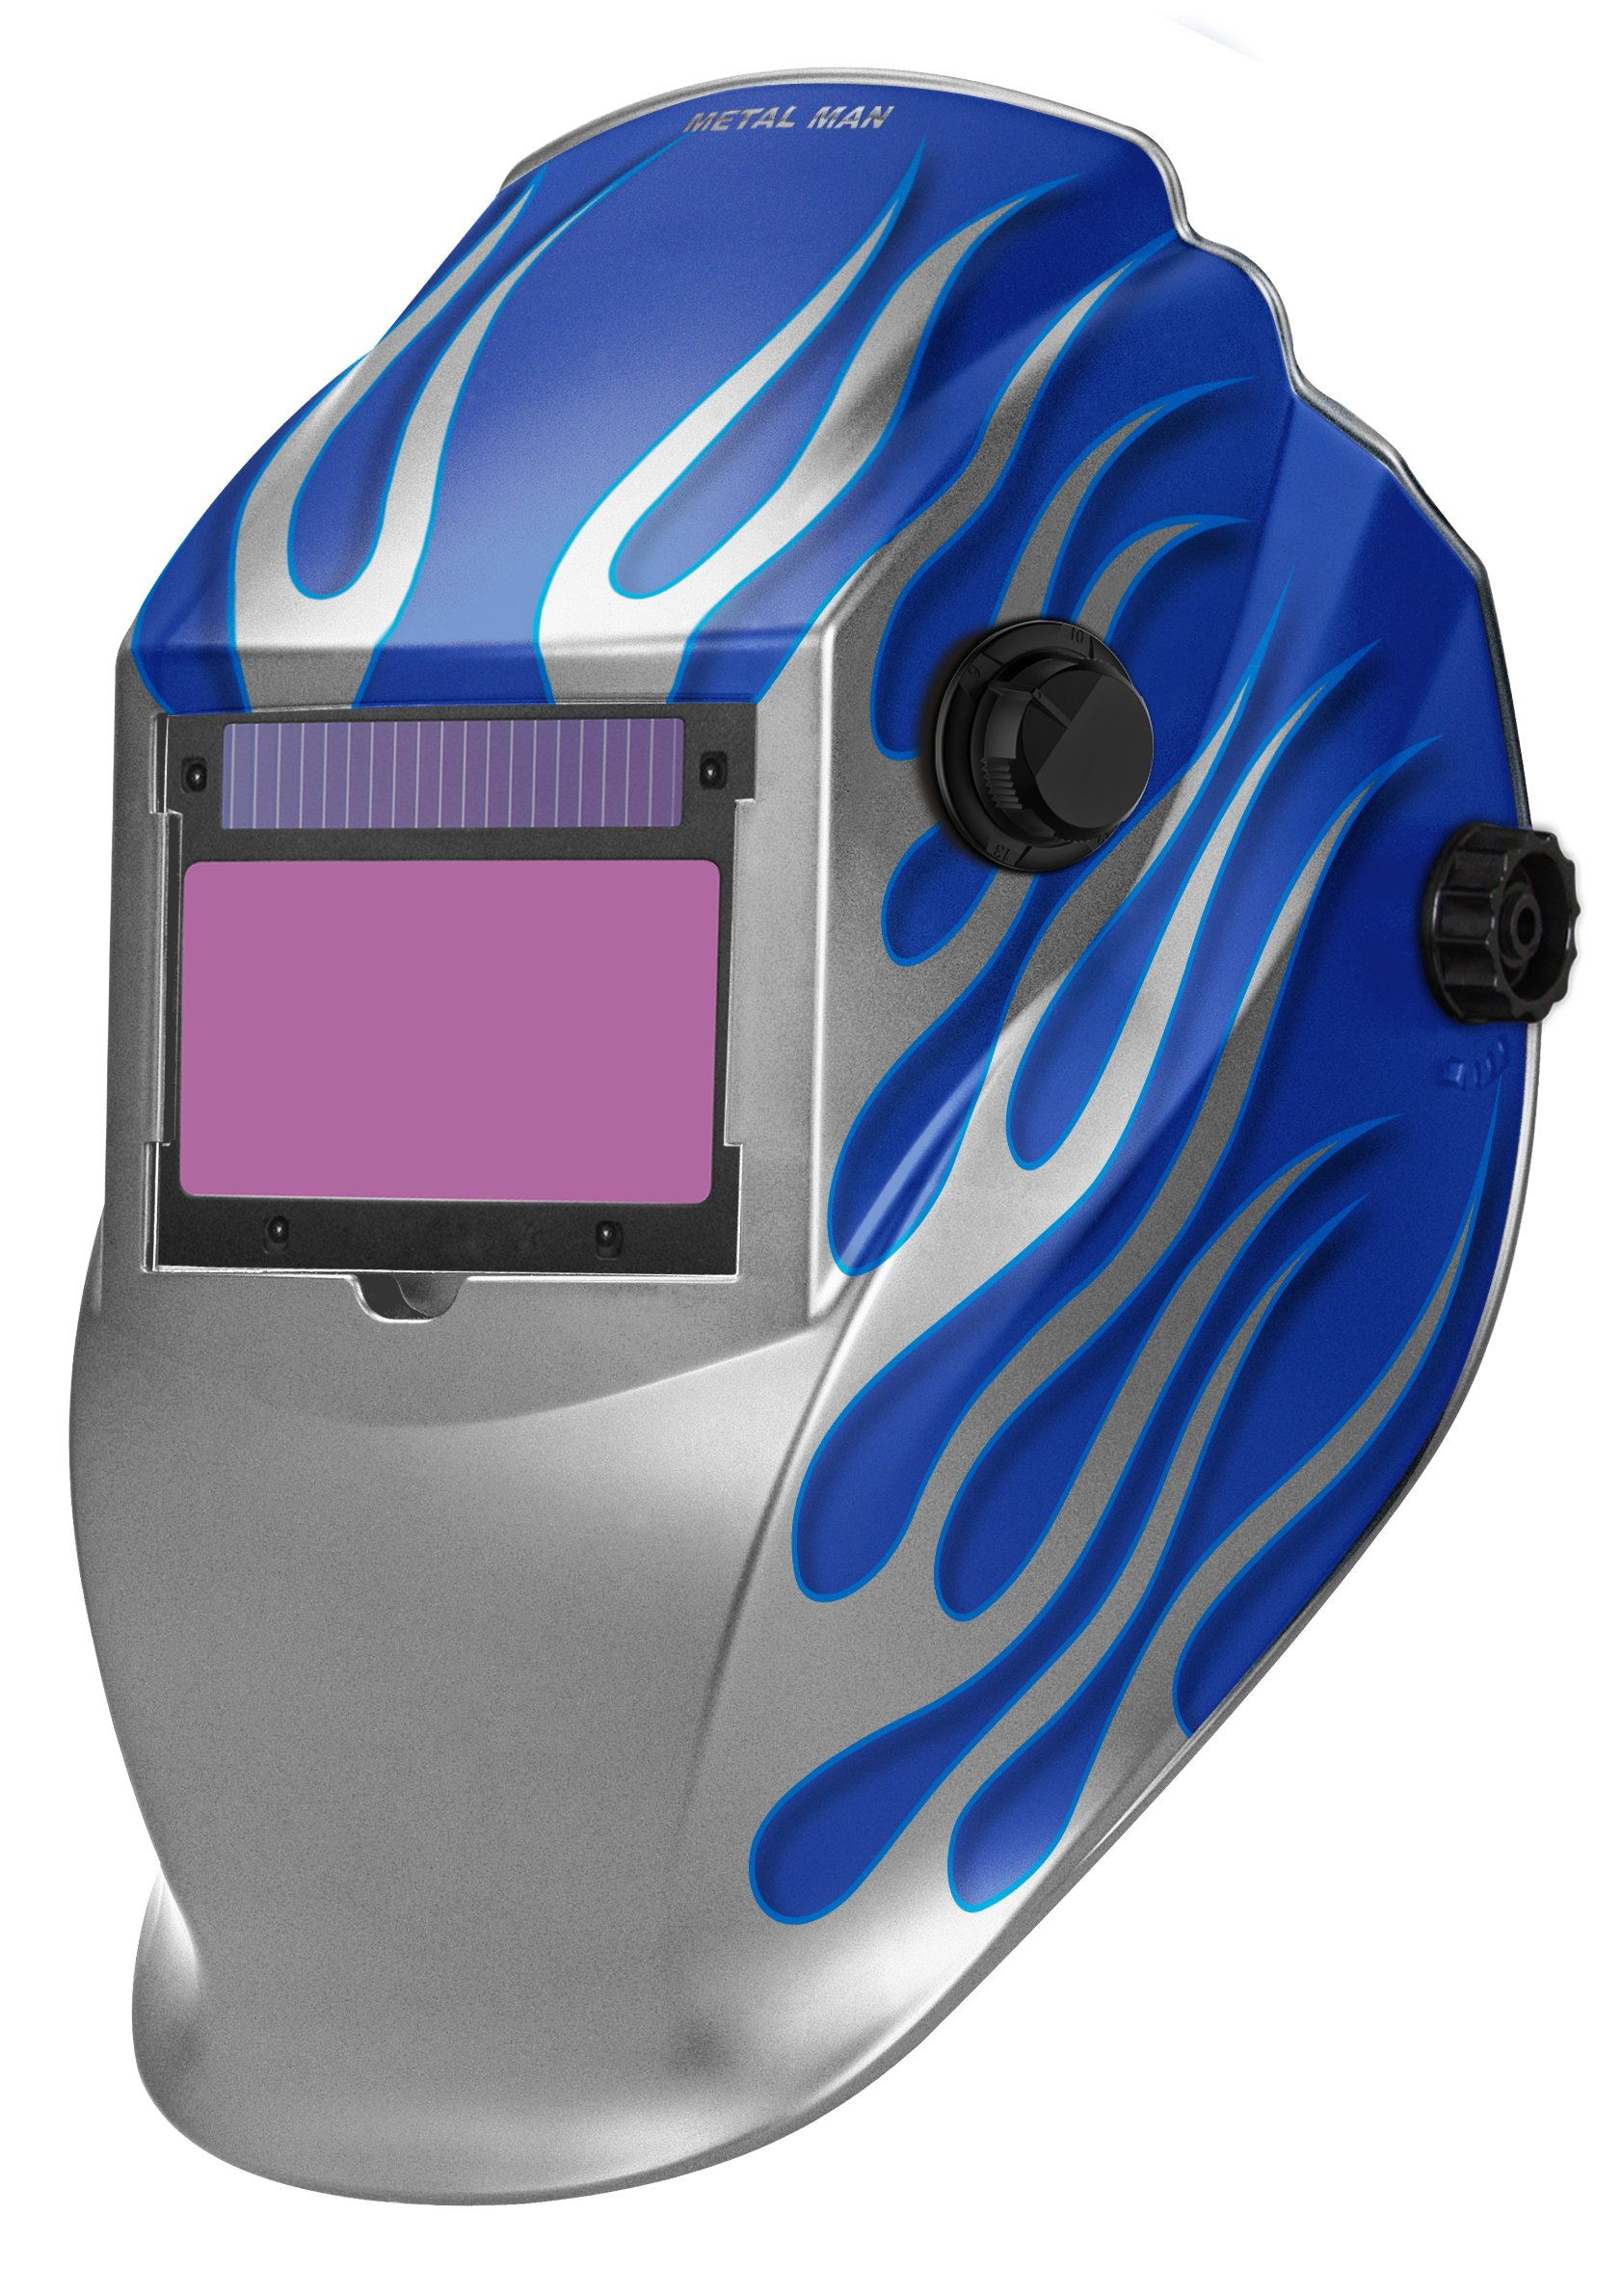 Metal Man ASB8735SGC 9-13 Variable Shade Professional Auto-Darkening Welding Helmet, Blue/Silver Flame